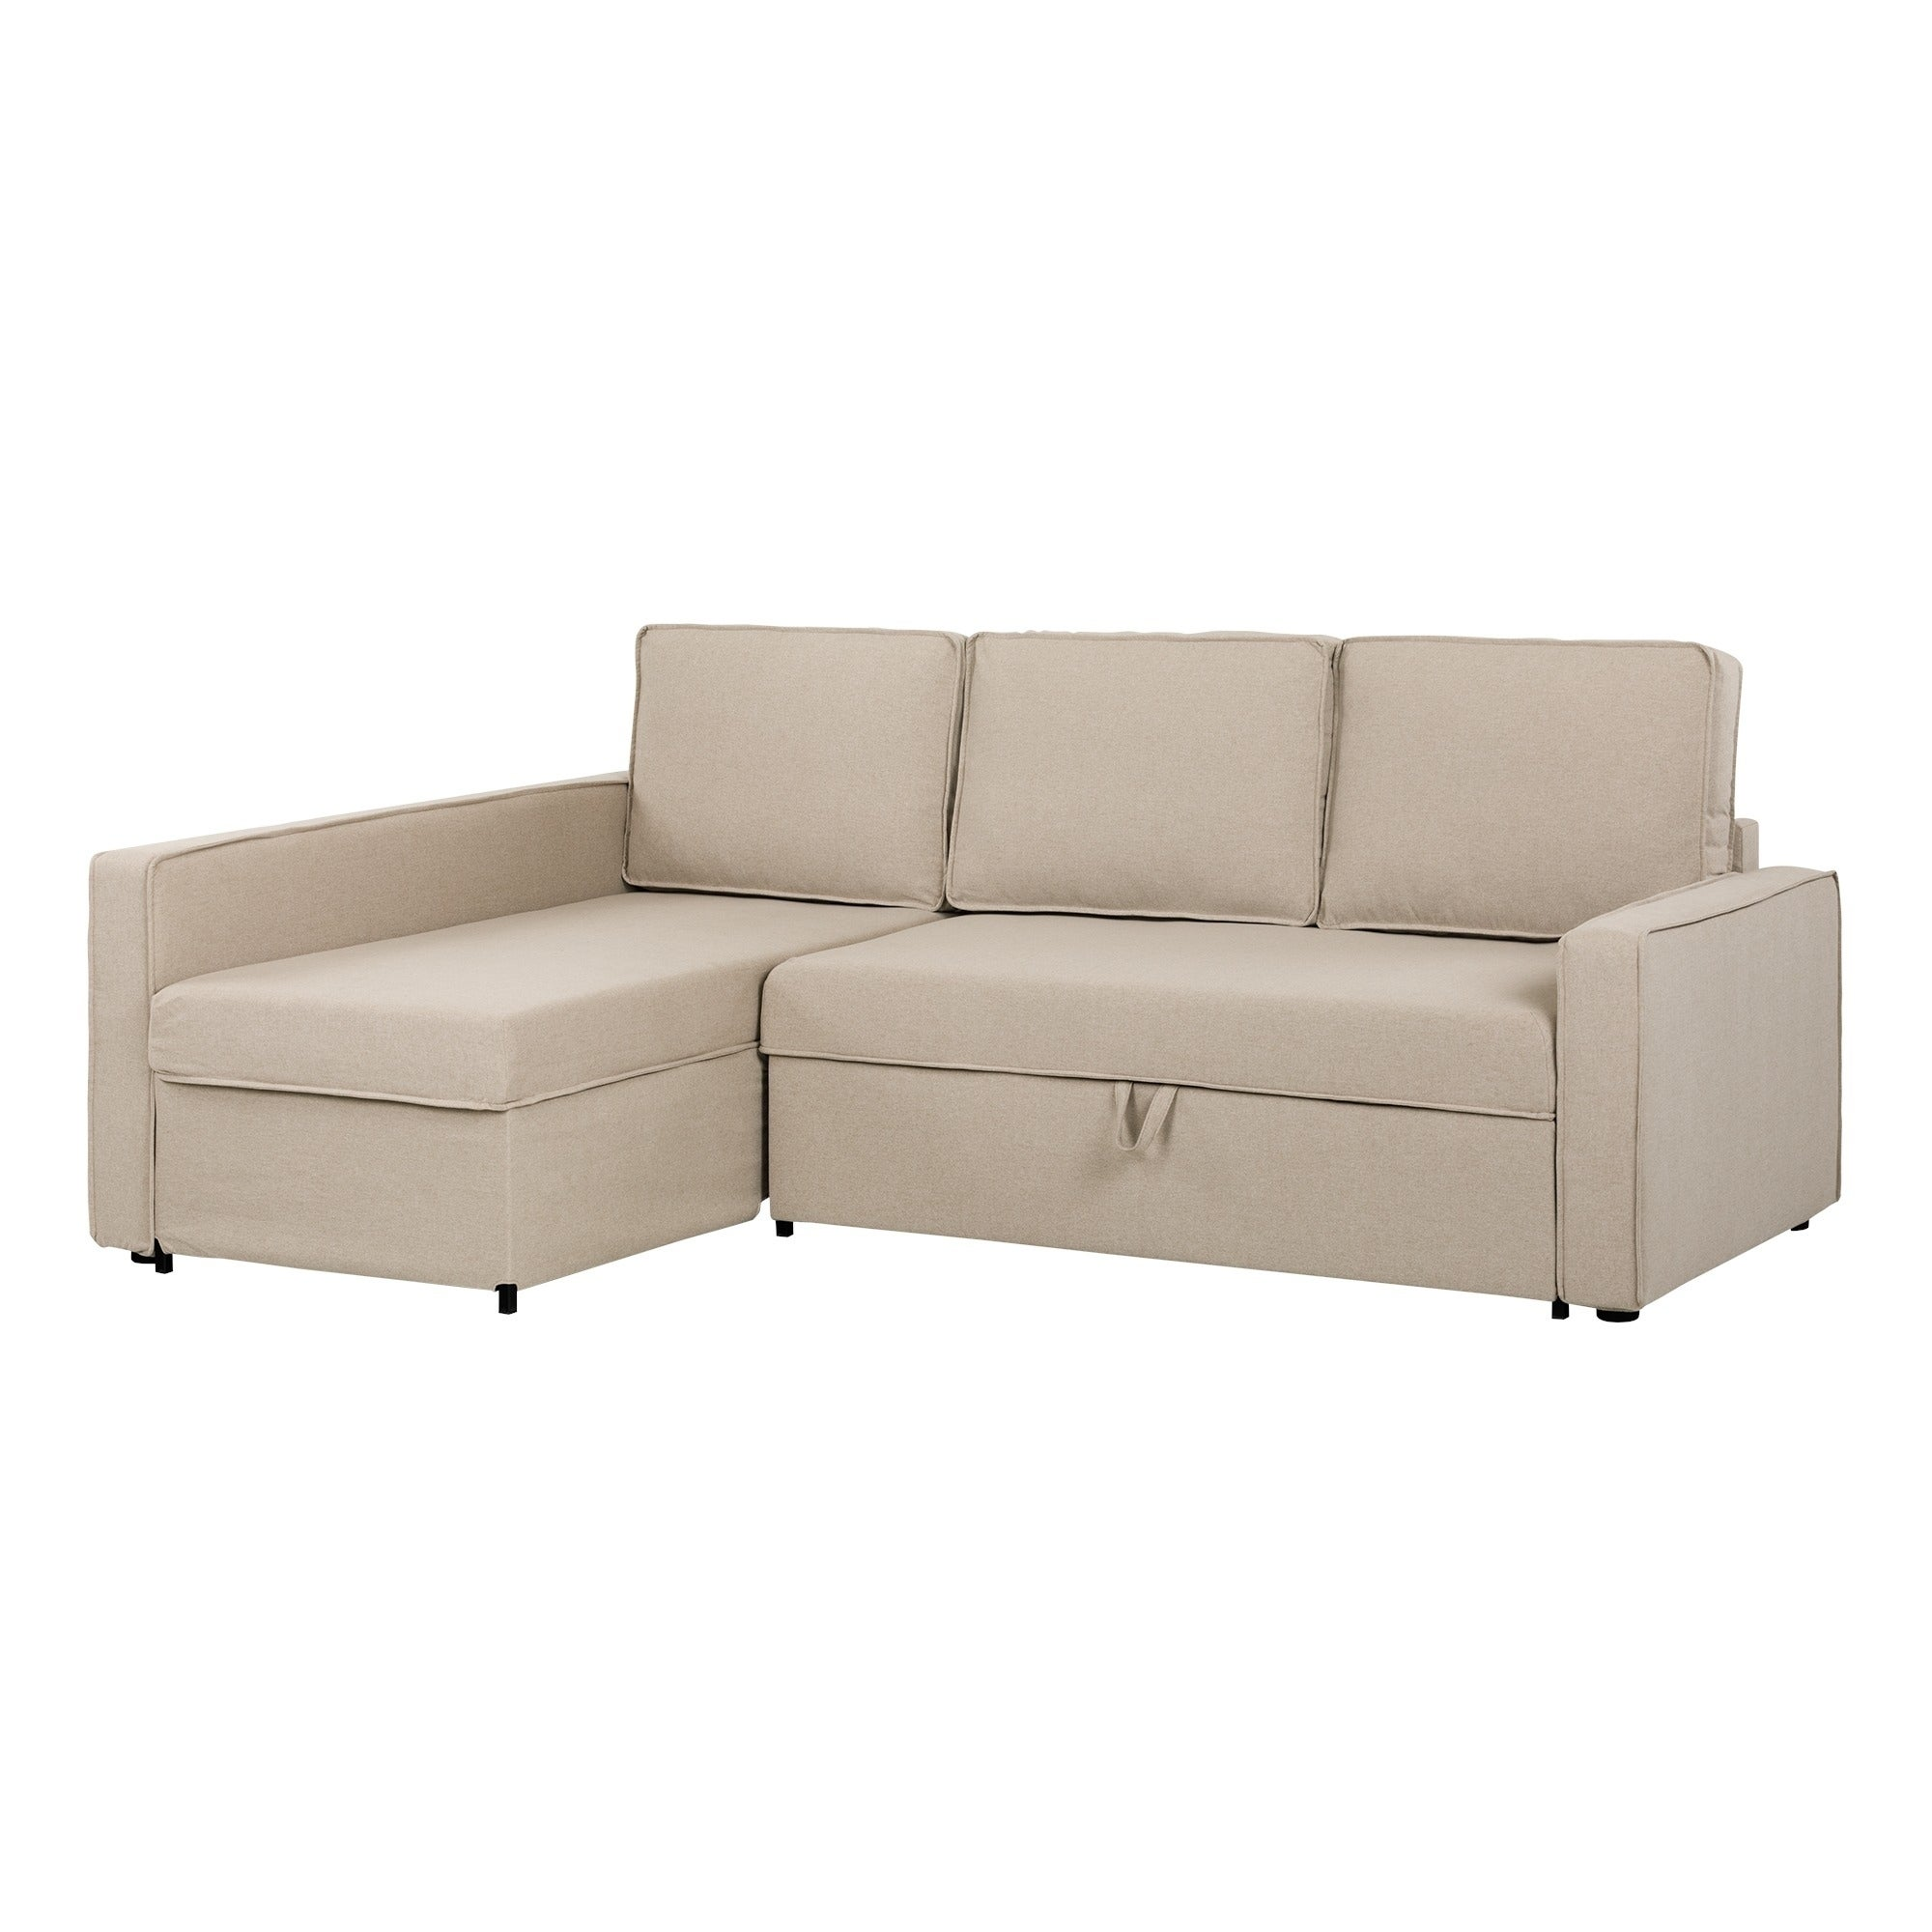 South S Live It Cozy Sectional Sofa Bed With Storage Free Shipping Today 18898503